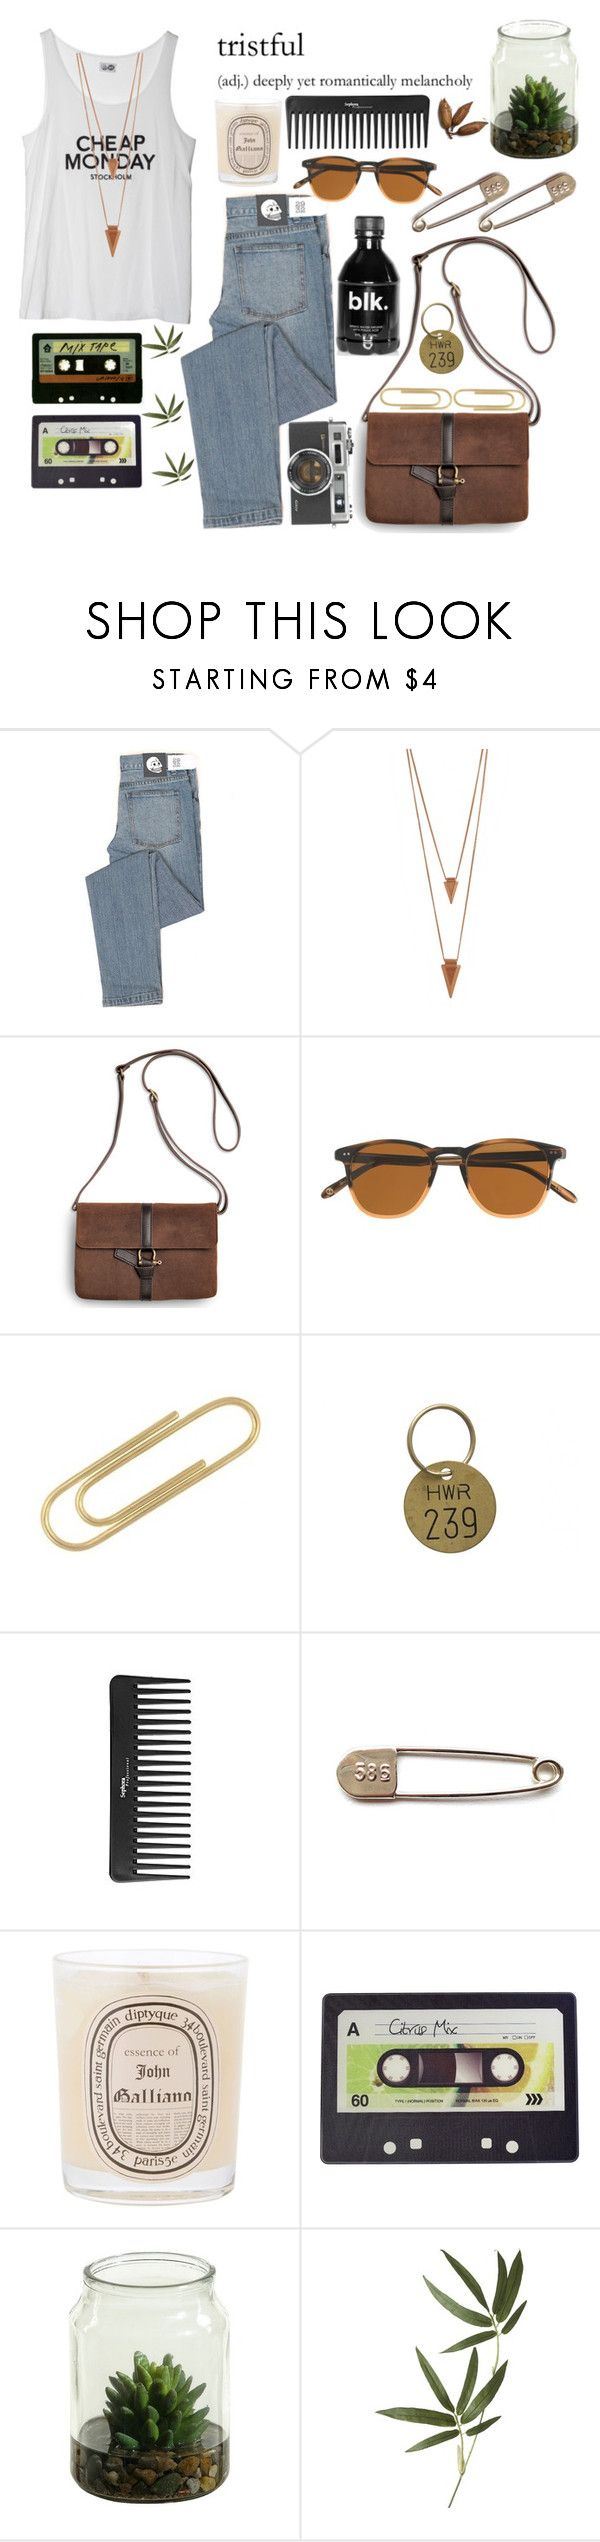 """I don't wanna good boy, no not today"" by gitasamudra ❤ liked on Polyvore featuring Cheap Monday, Jules Smith, Sperry, J.Crew, CO, Jayson Home, Sephora Collection, Diptyque, Joseph Joseph and Crate and Barrel"